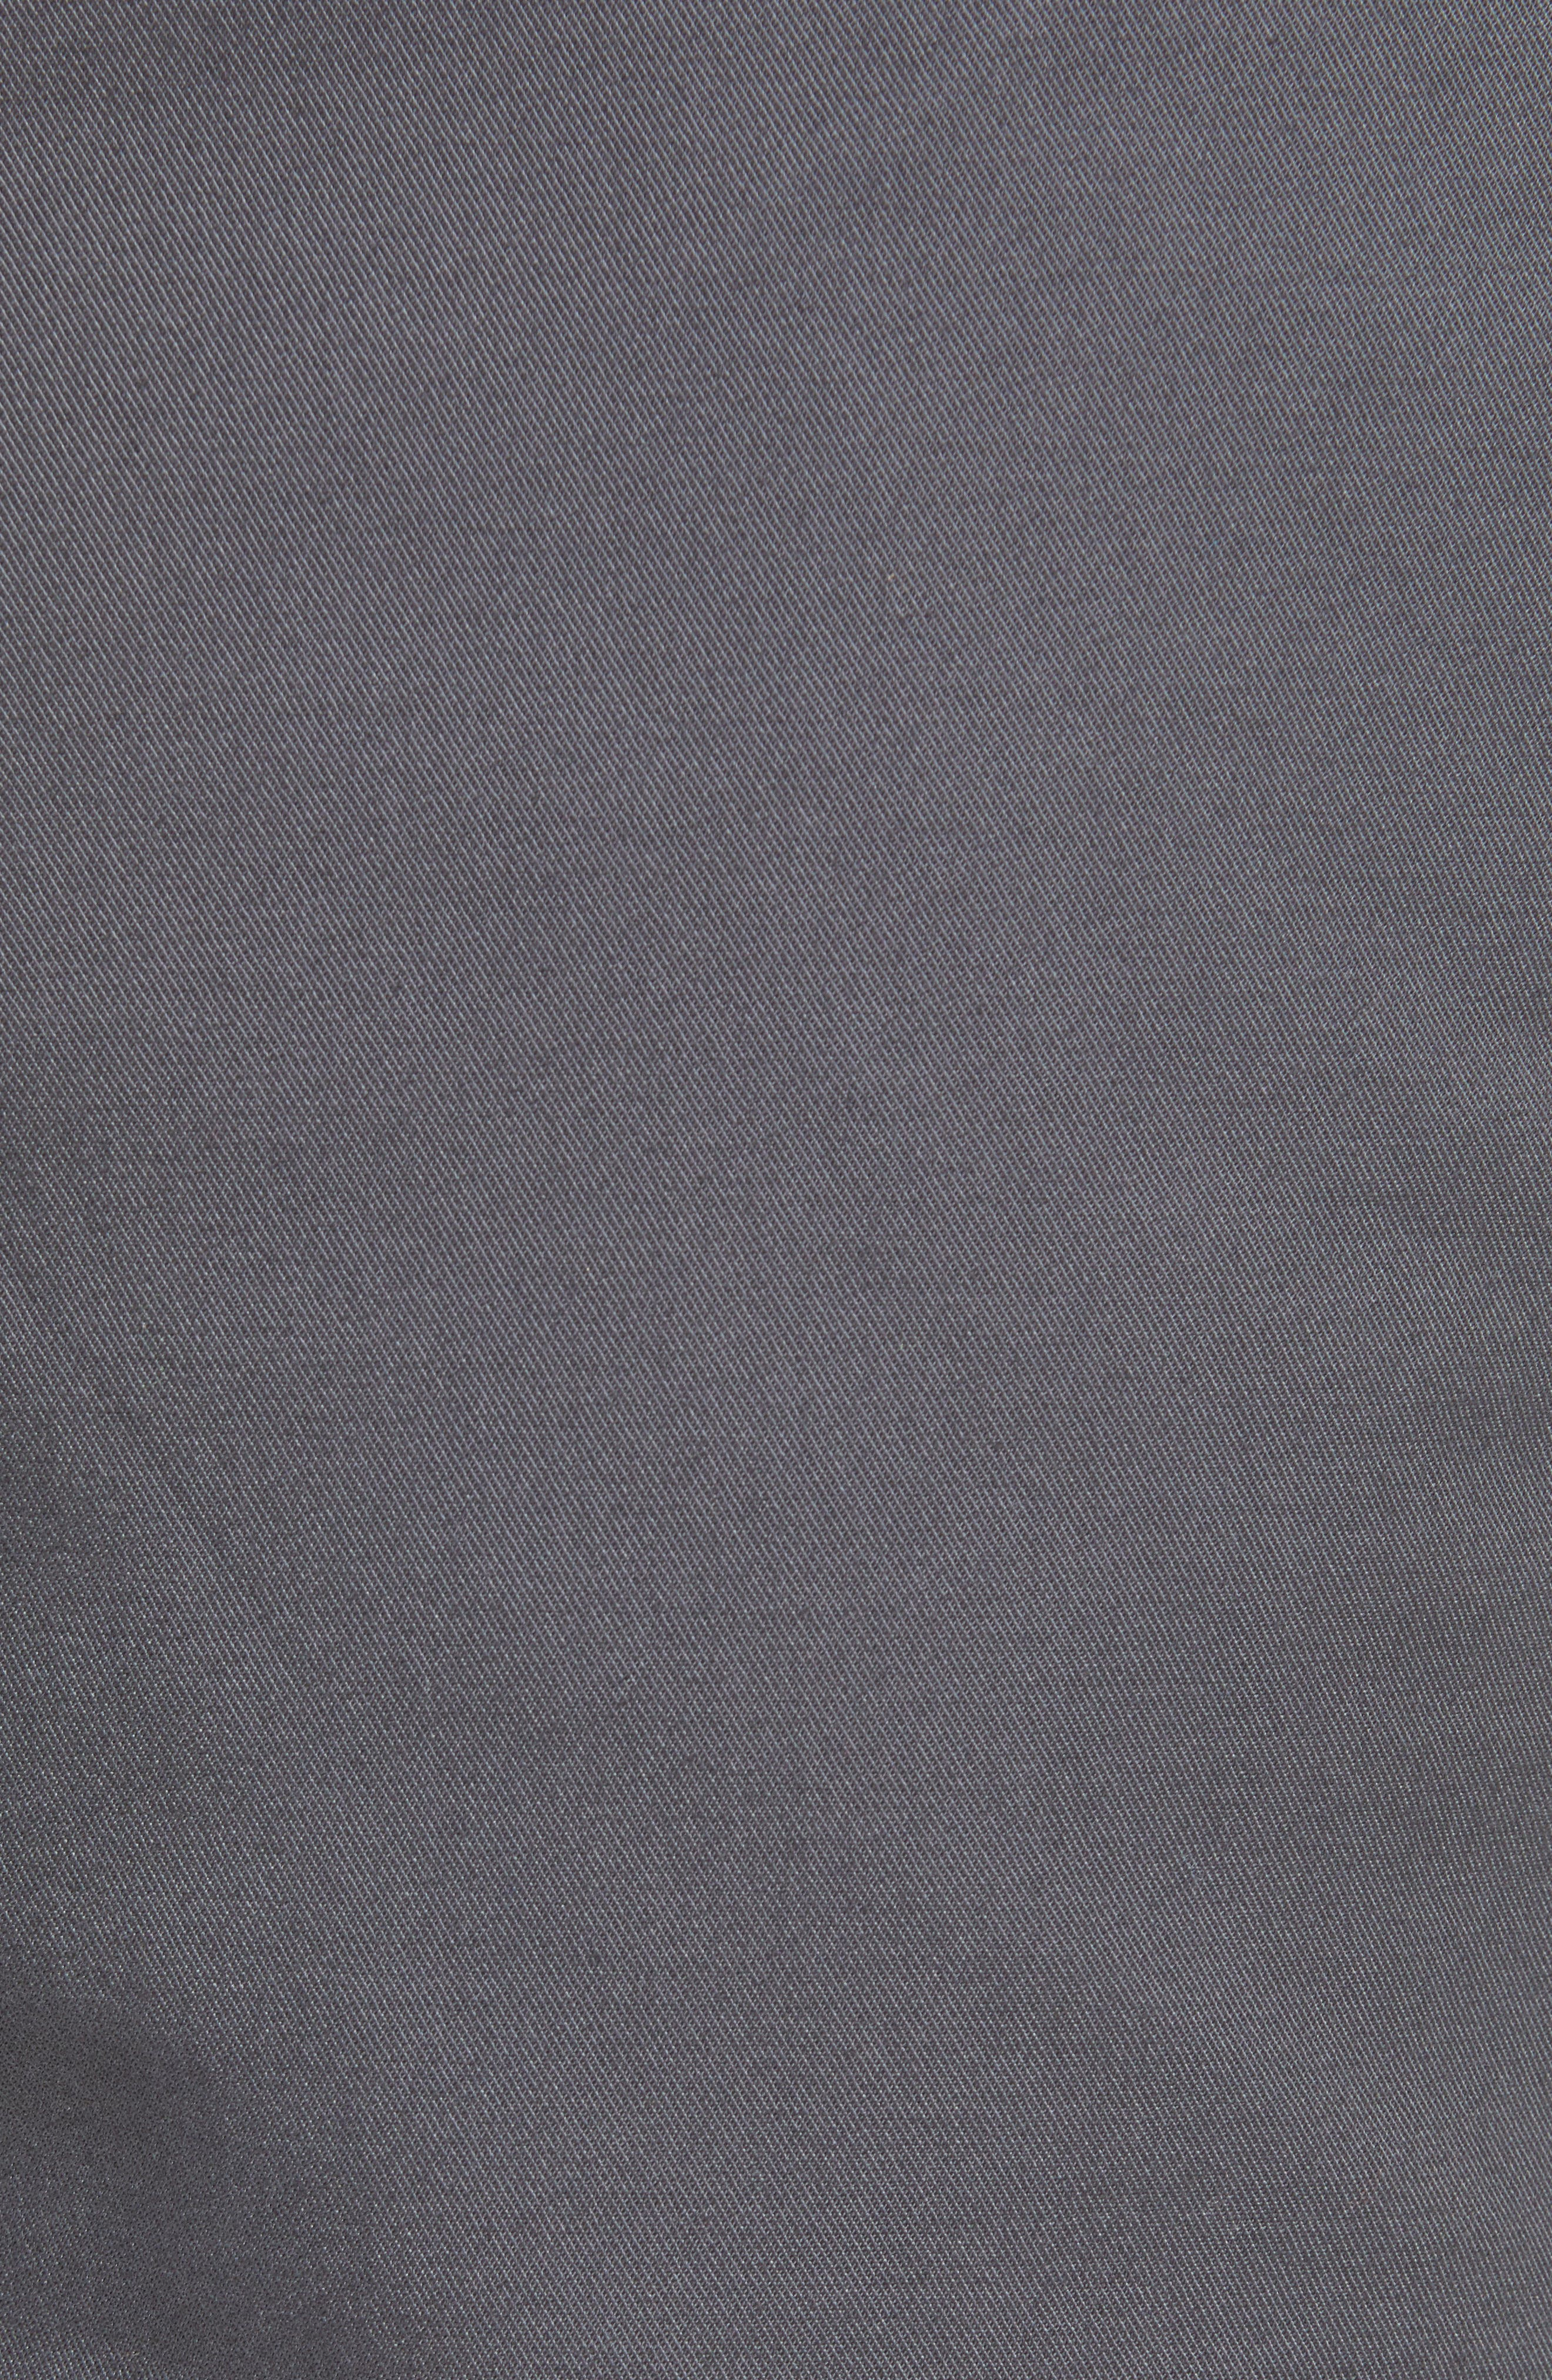 Slim Fit Flannel Lined Chinos,                             Alternate thumbnail 5, color,                             COAL GREY